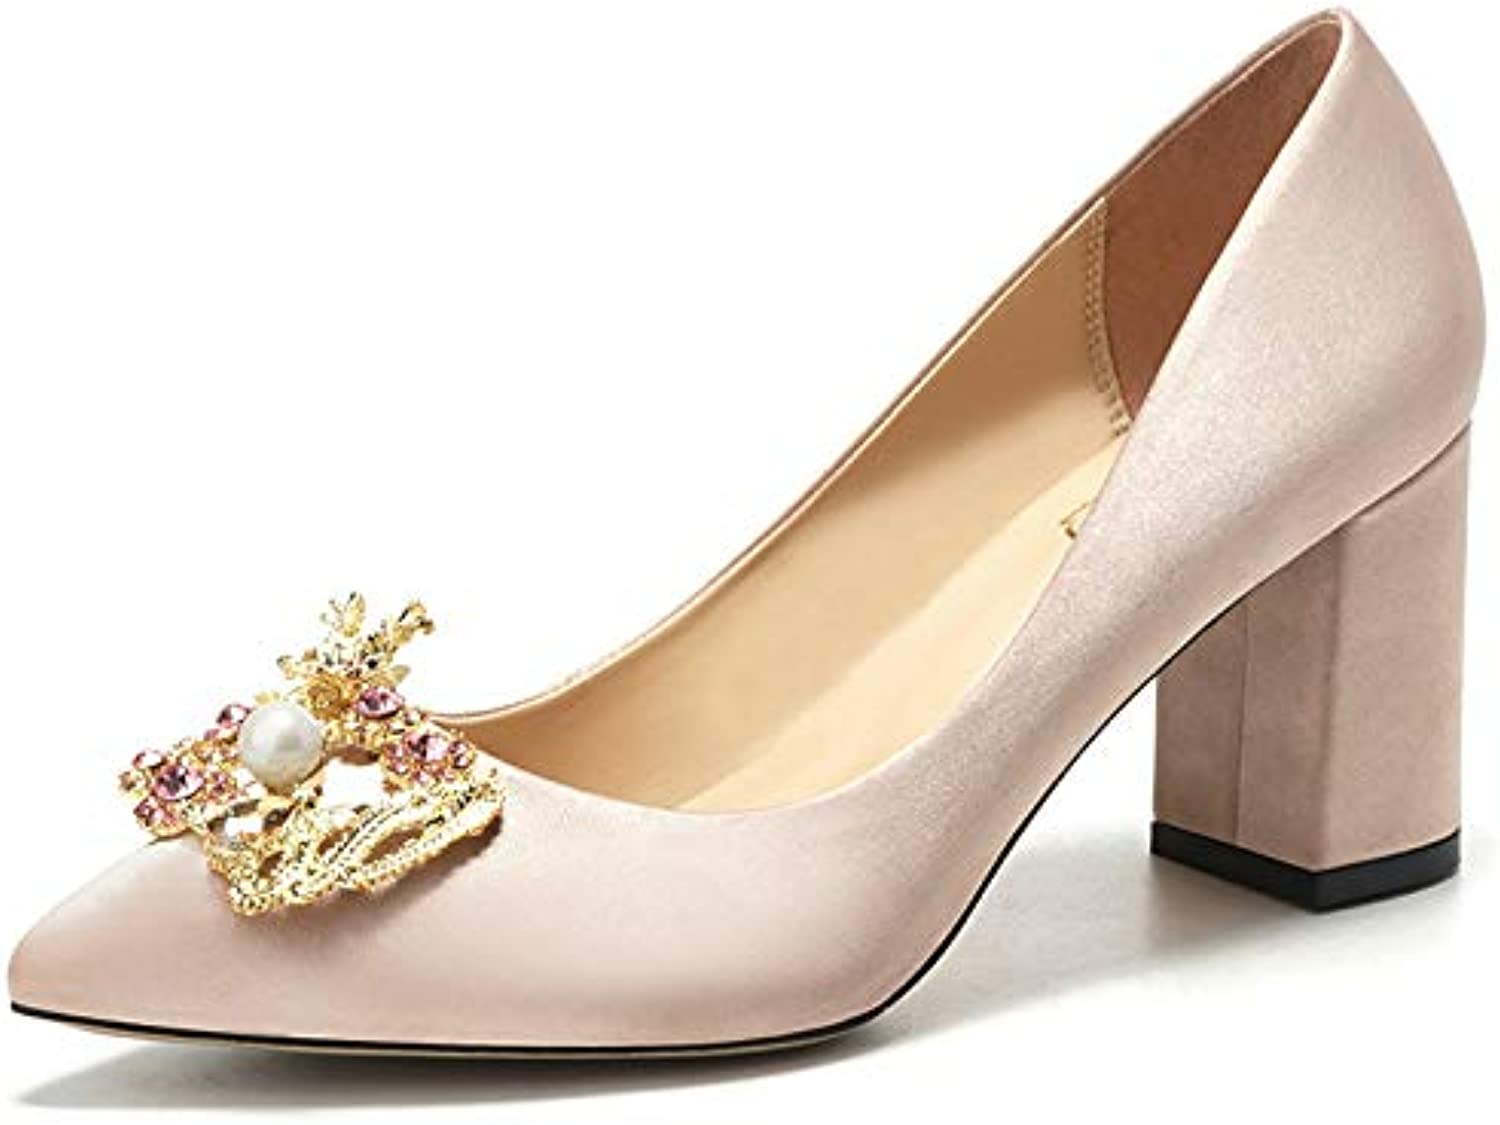 2a81d7fdb691 Ladies  Satin Court Shoes Champagne Rhinestone High Heels Dinner Wedding  Wedding Wedding Match Dress Glamour Elegance 448 B07GDL4Z9Y Parent 03e343